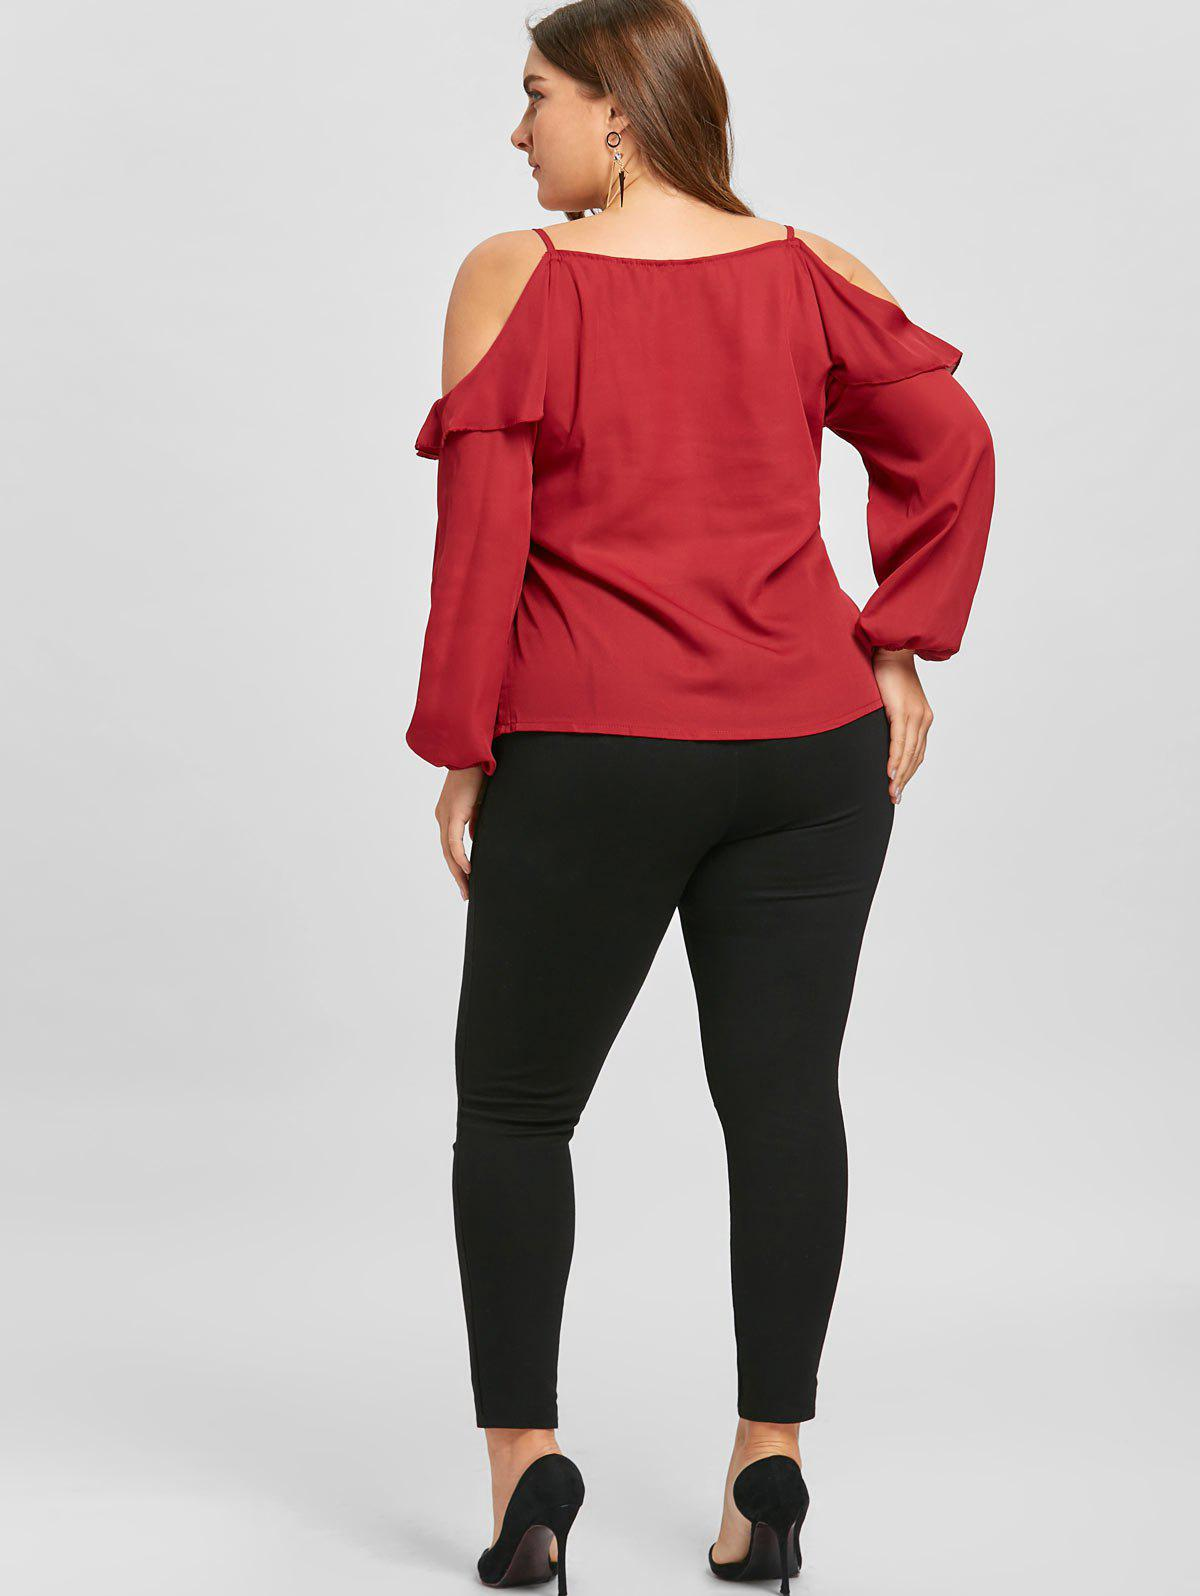 Plus Size Ruffled Long Sleeve Chiffon Cold Shoulder Top - RED 3XL